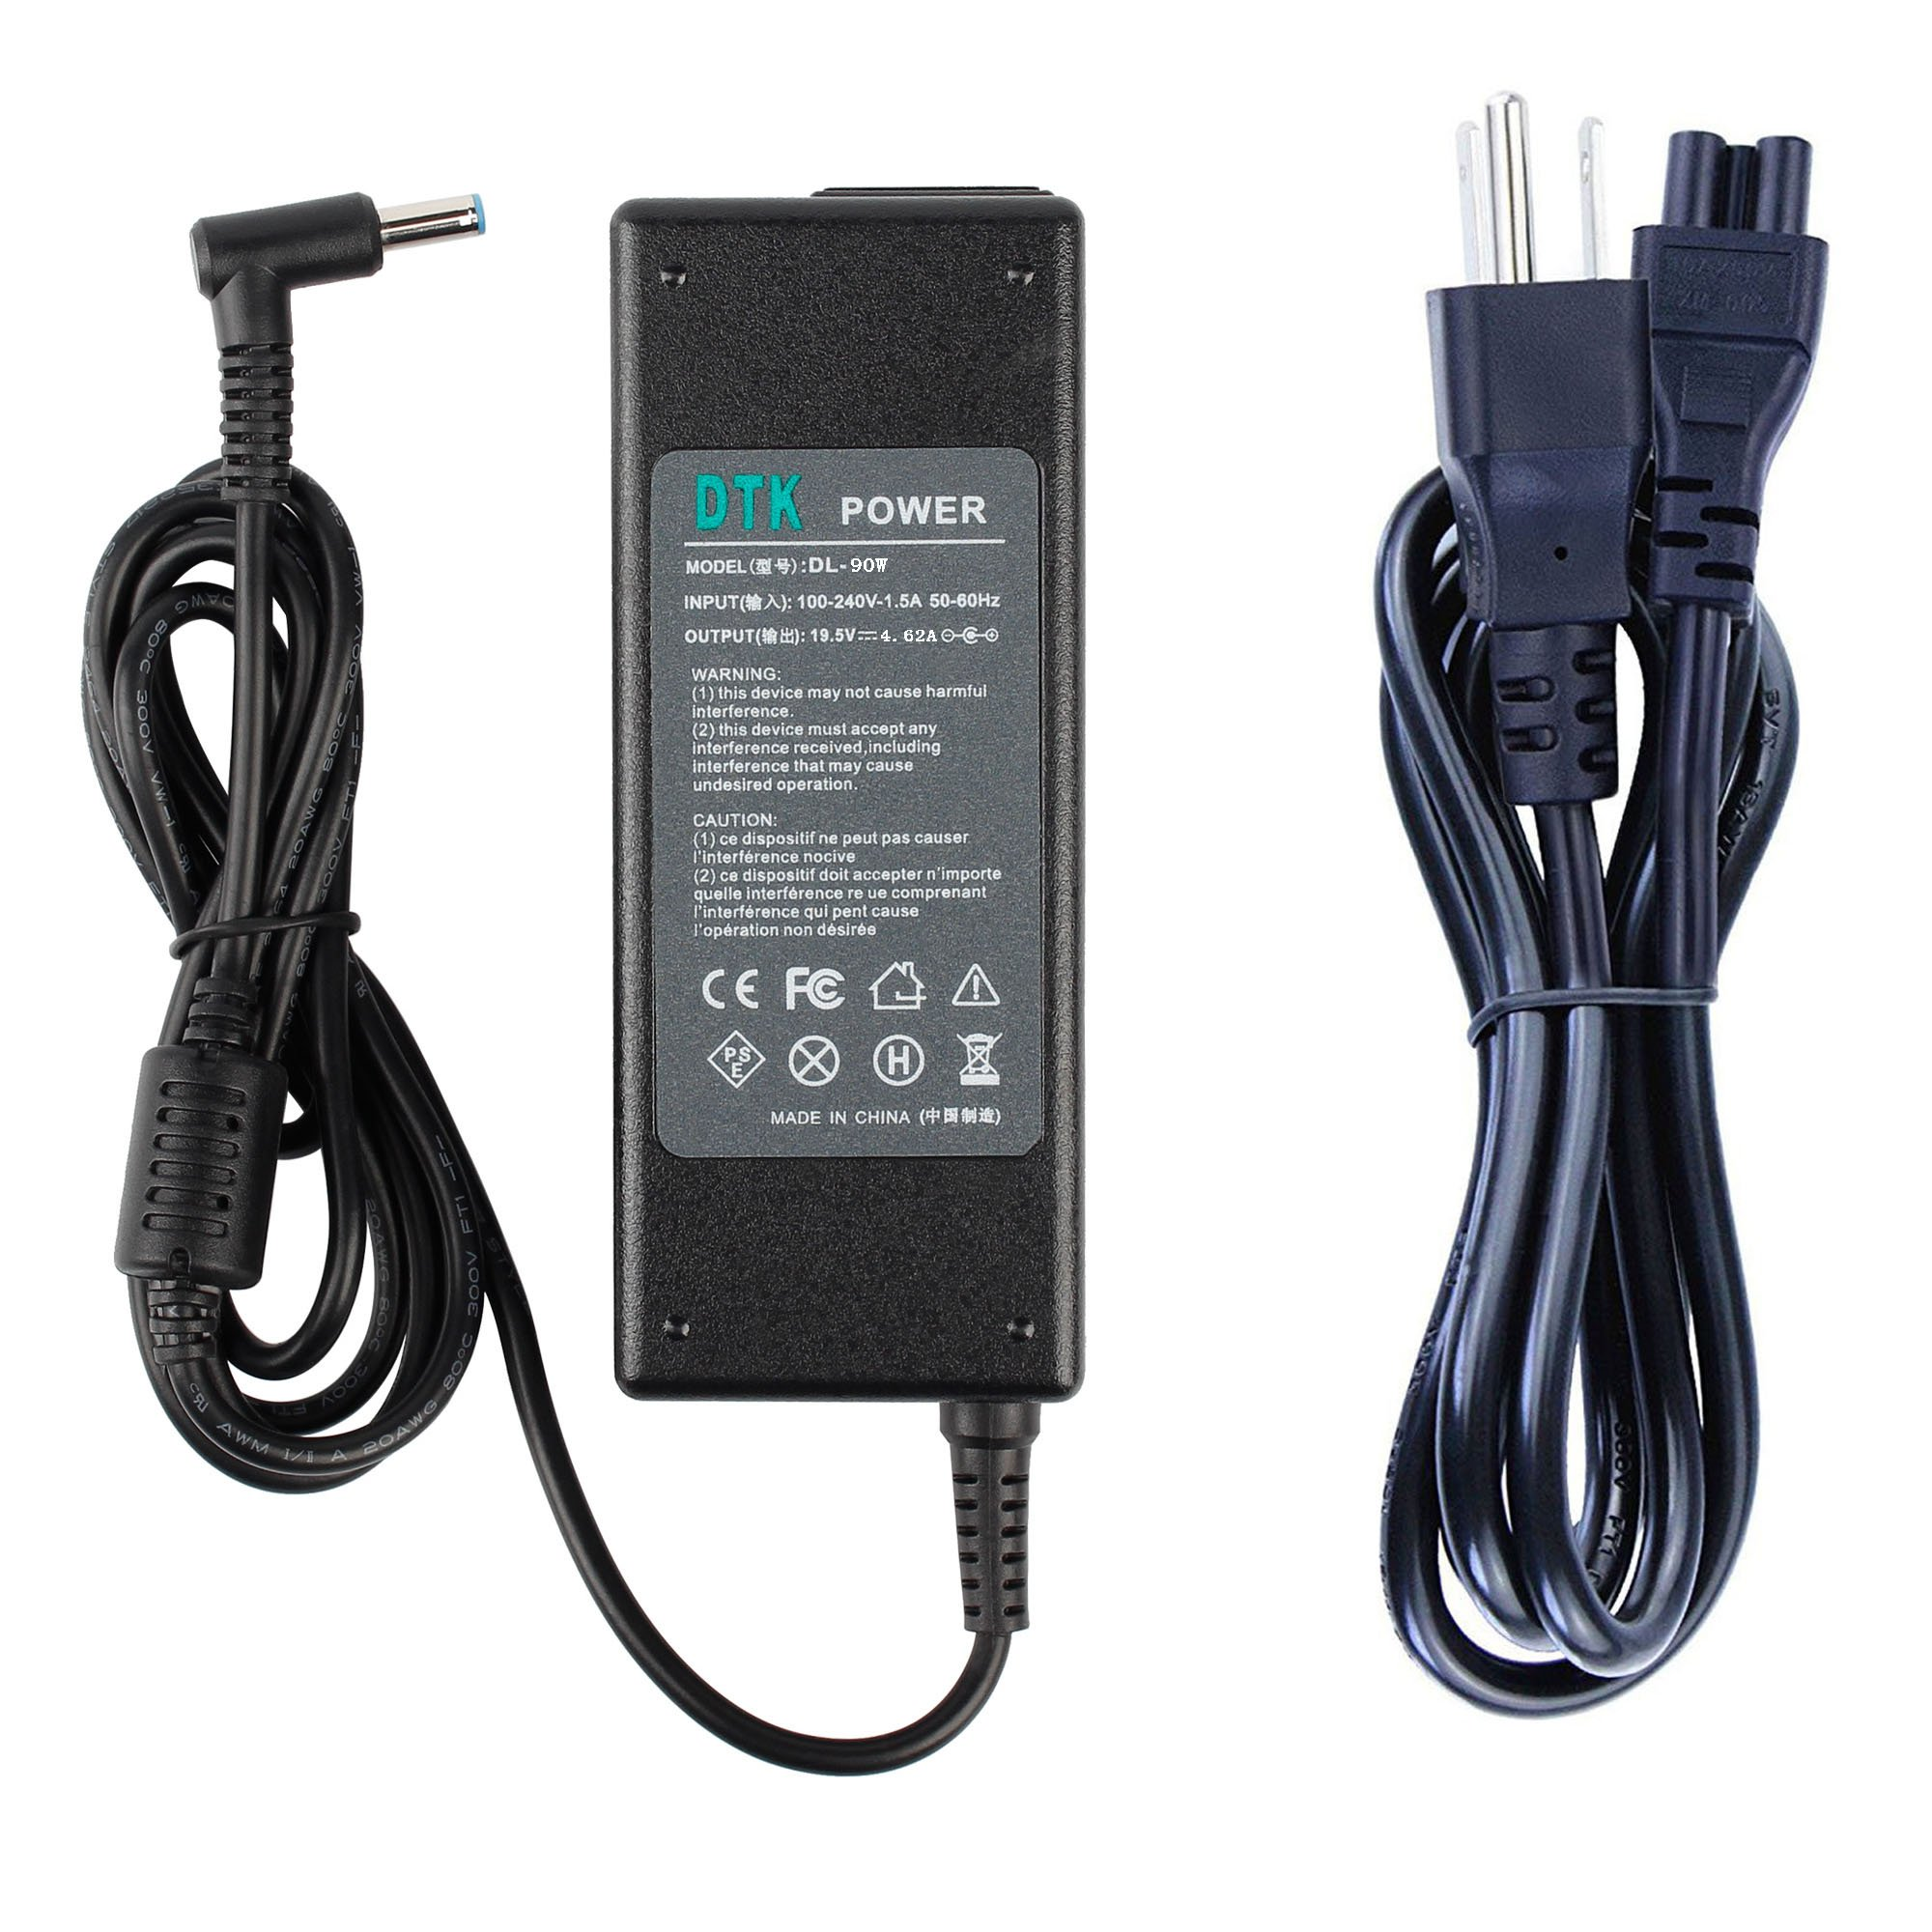 DTK Ac Adapter Laptop Computer Charger/Notebook PC Power Cord Supply Source Plug for HP 19.5V 4.62A 90W Connector Size: 4.5X3.0mm with pin Inside